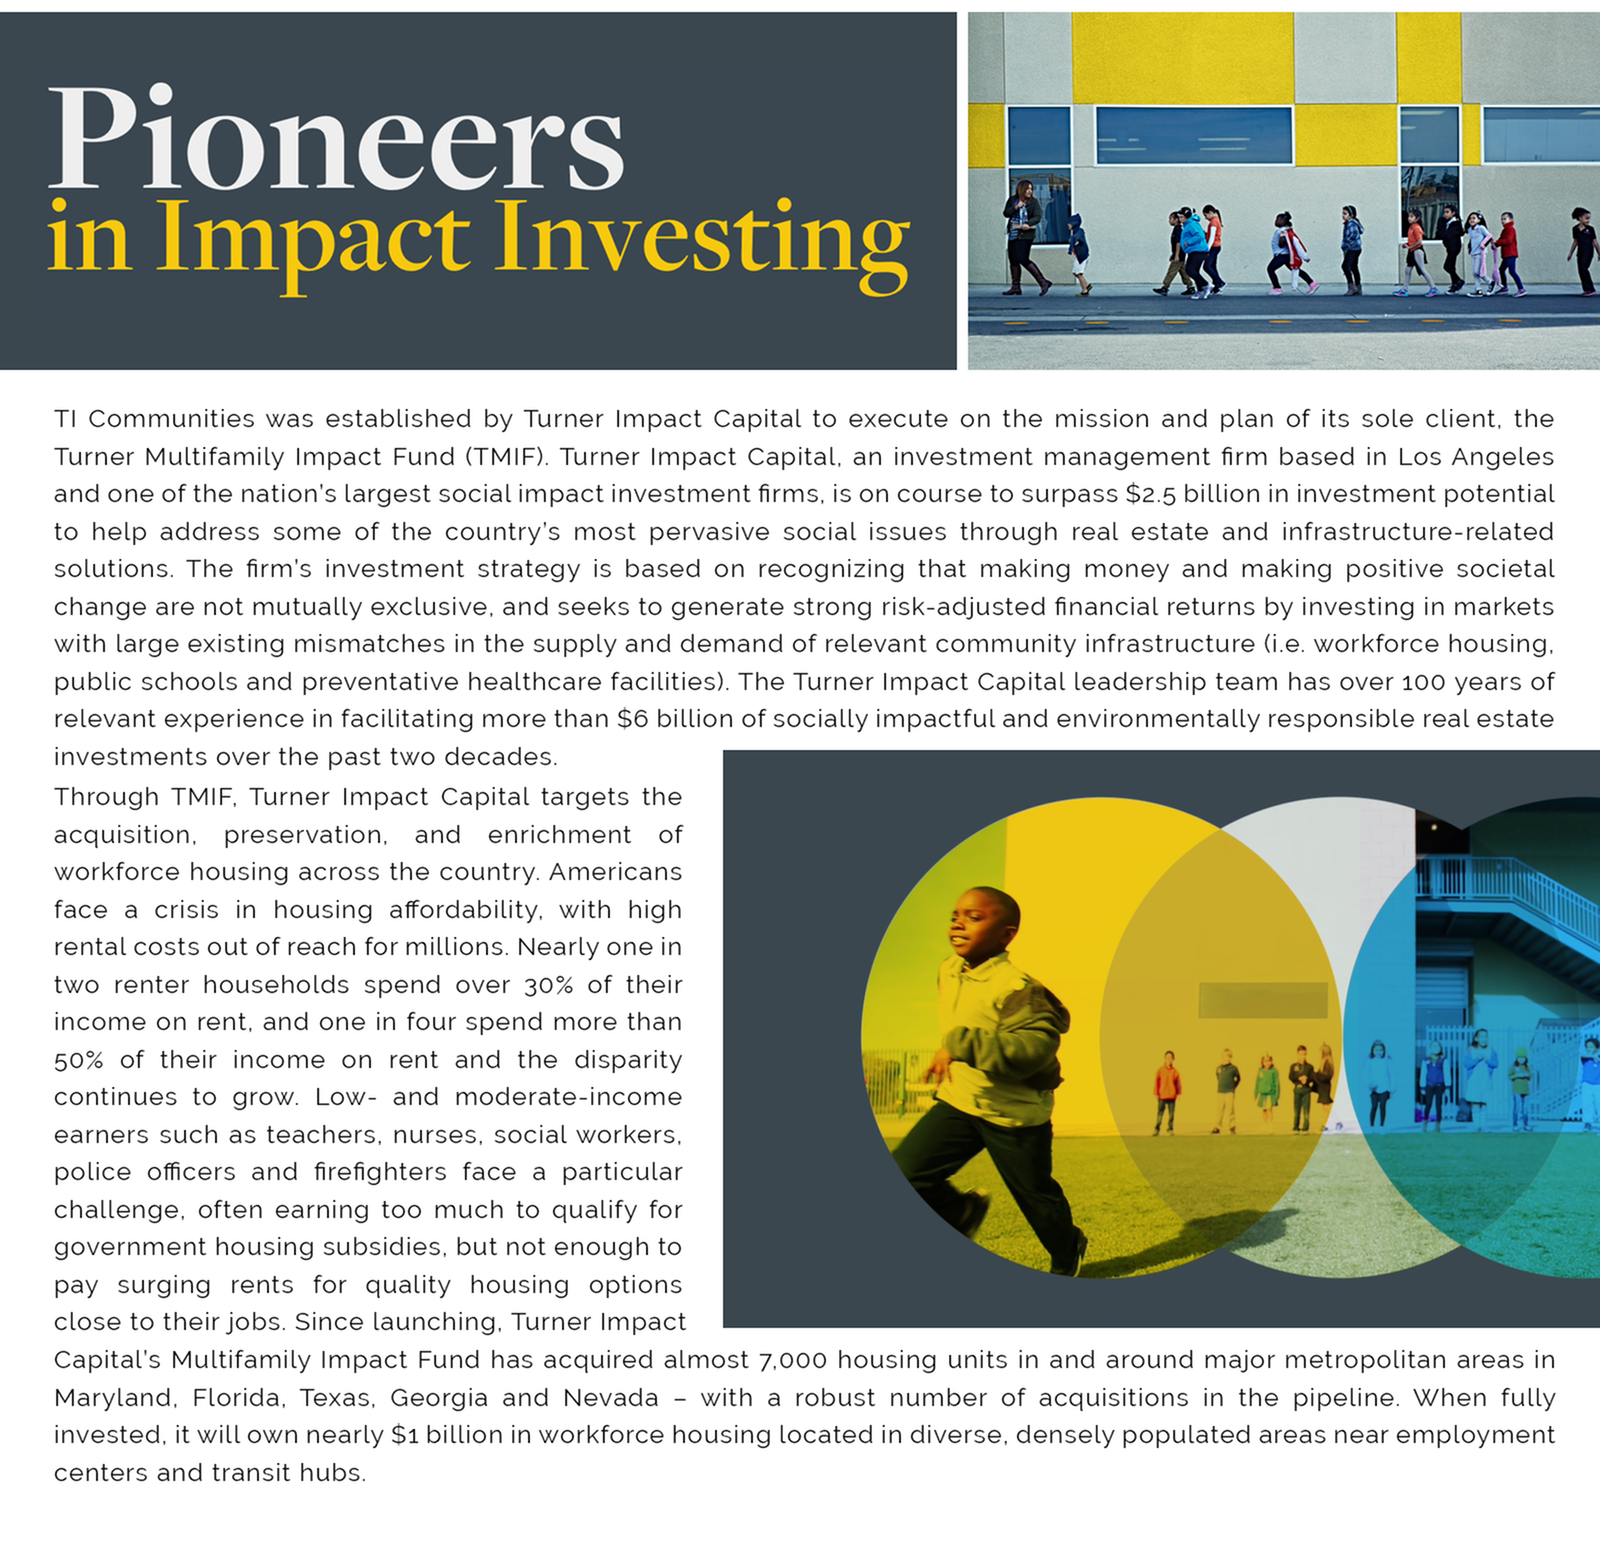 Pioneers in Impact Investing